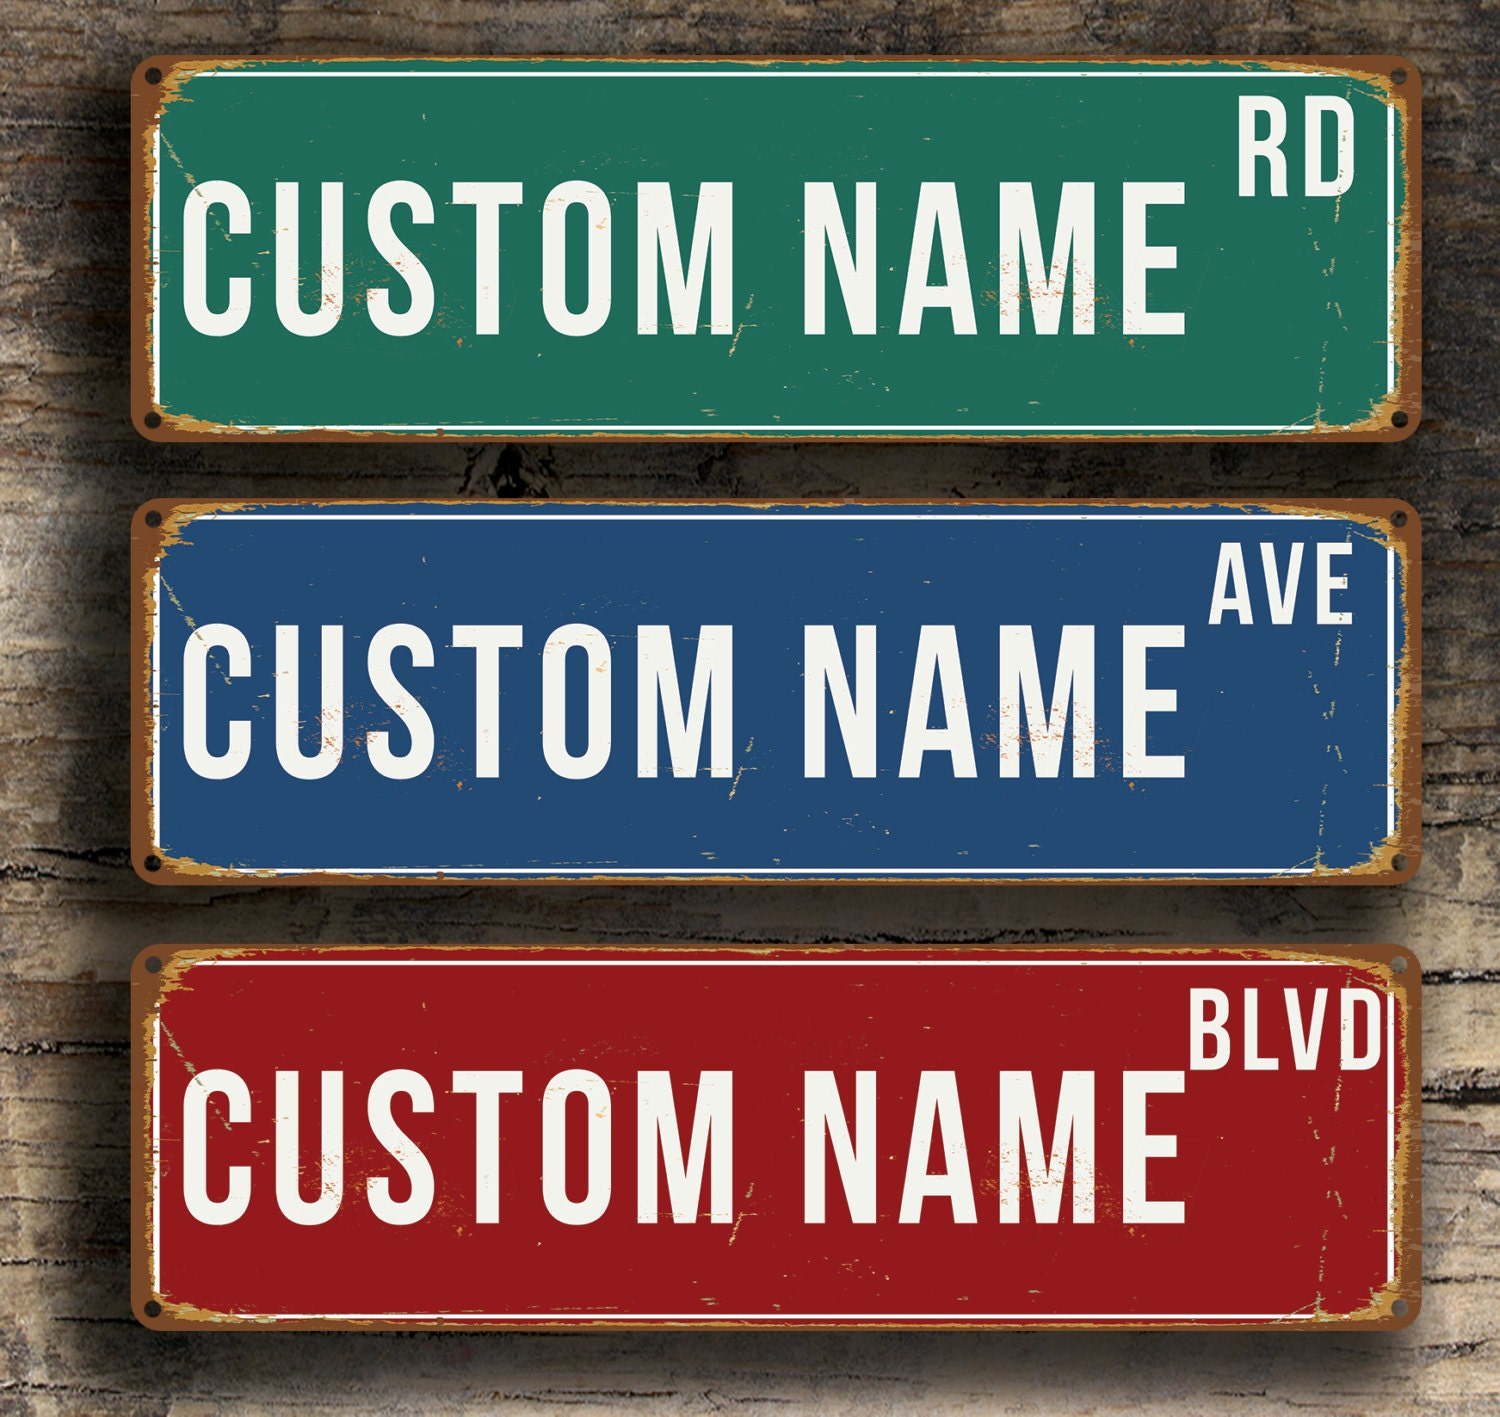 Custom ROAD SIGN, Vintage style Road Sign,personalized road sign, customizable road signs, Road Signs, Customizable Street Sign, Road Signs